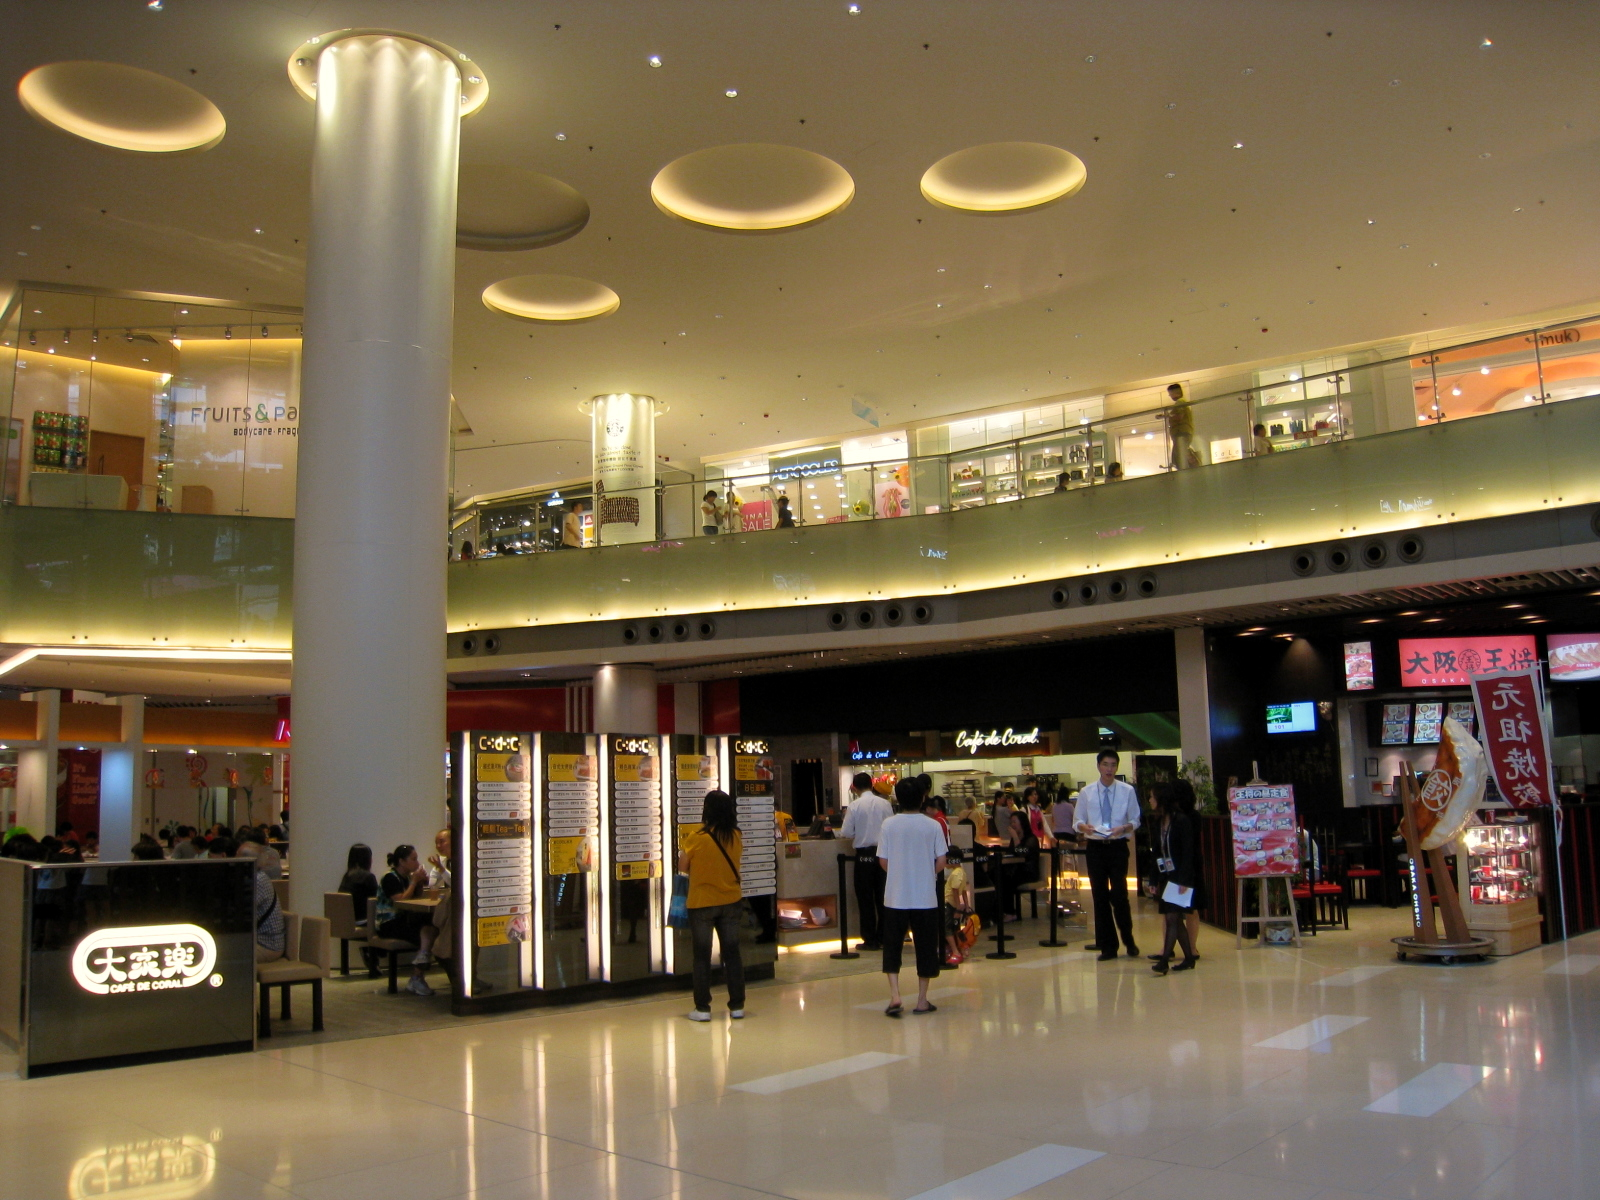 unforgettable shopping mall and great food essay Writing topics do you want to inspire your students to write great narratives, essays, and reports  my craziest experience in a restaurant or shopping mall.